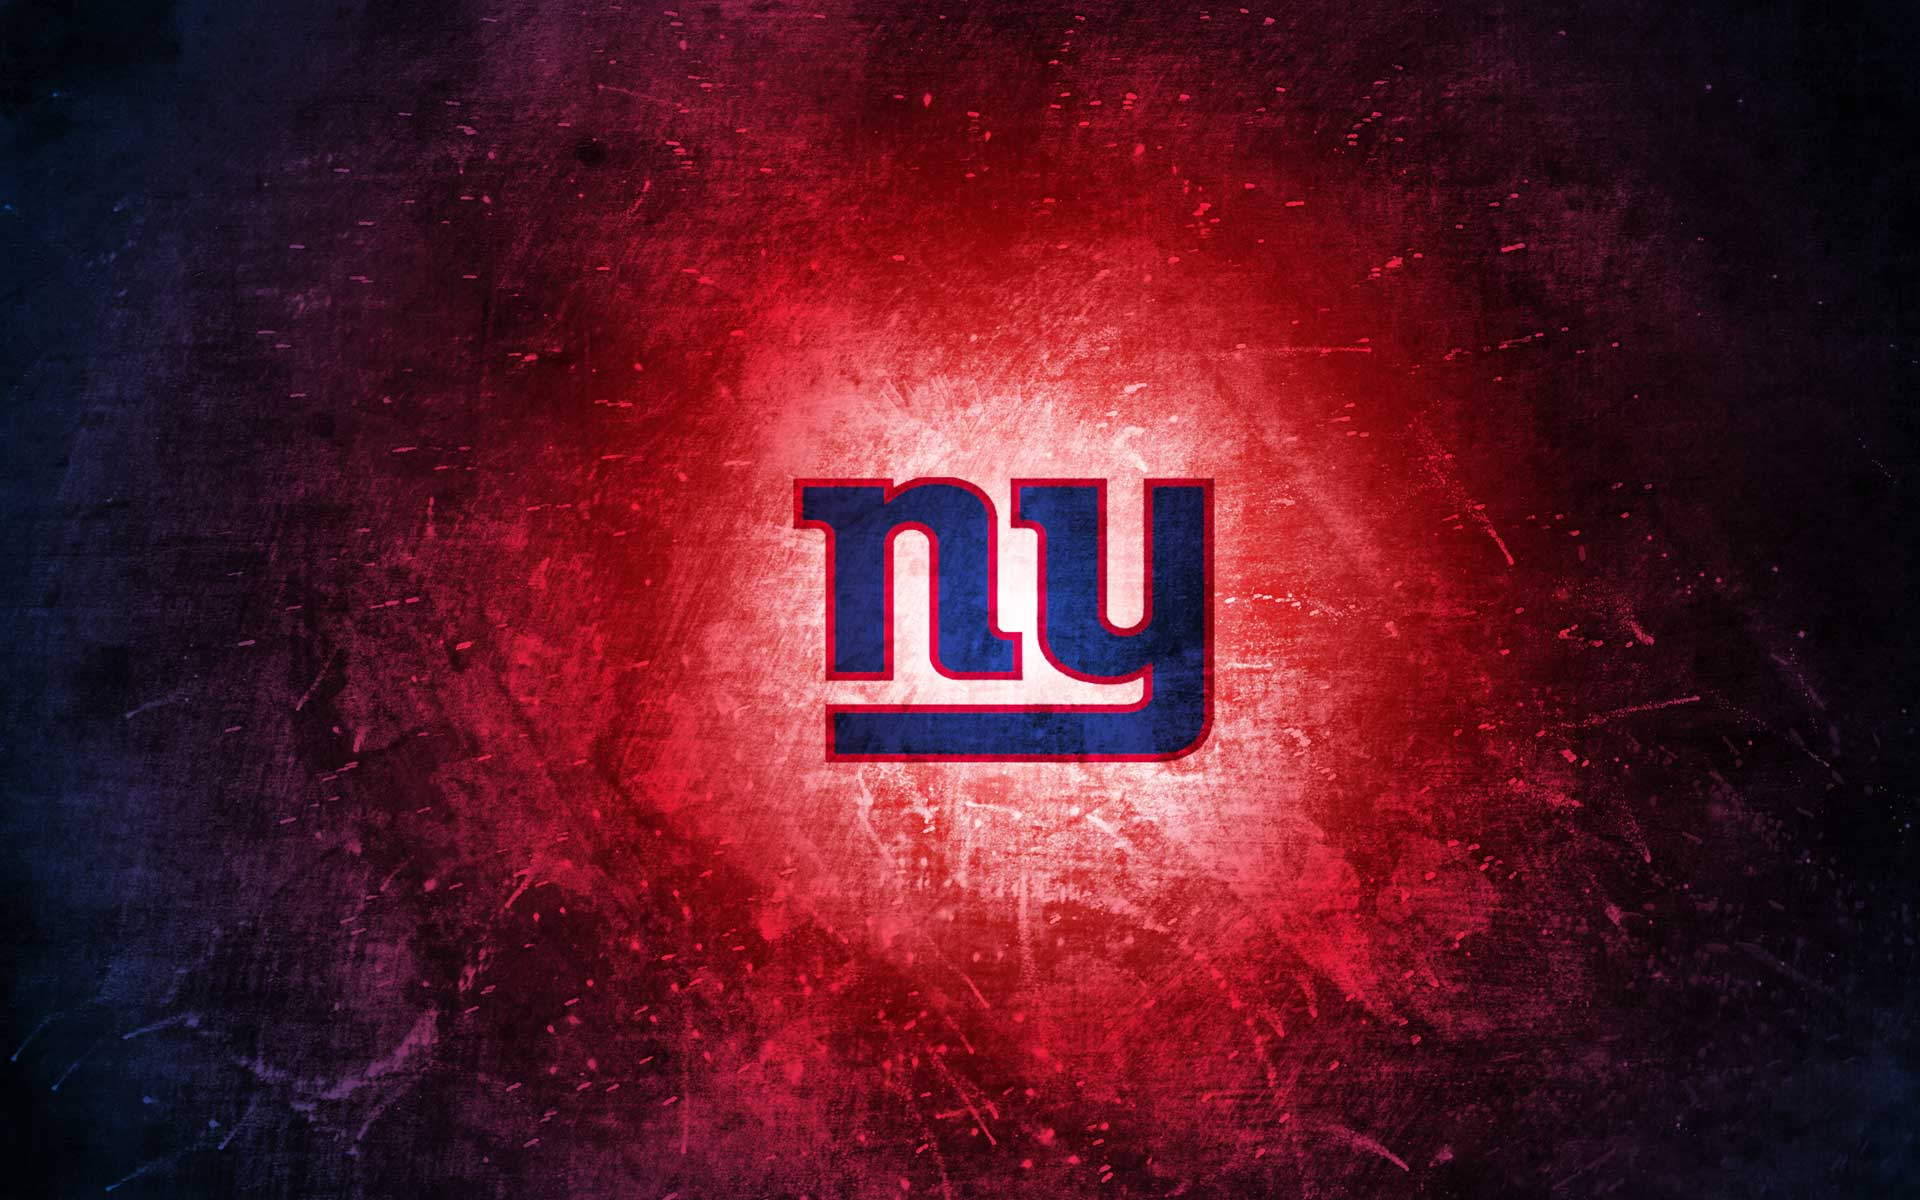 Enjoy our wallpaper of the week!!! New York Giants wallpaper